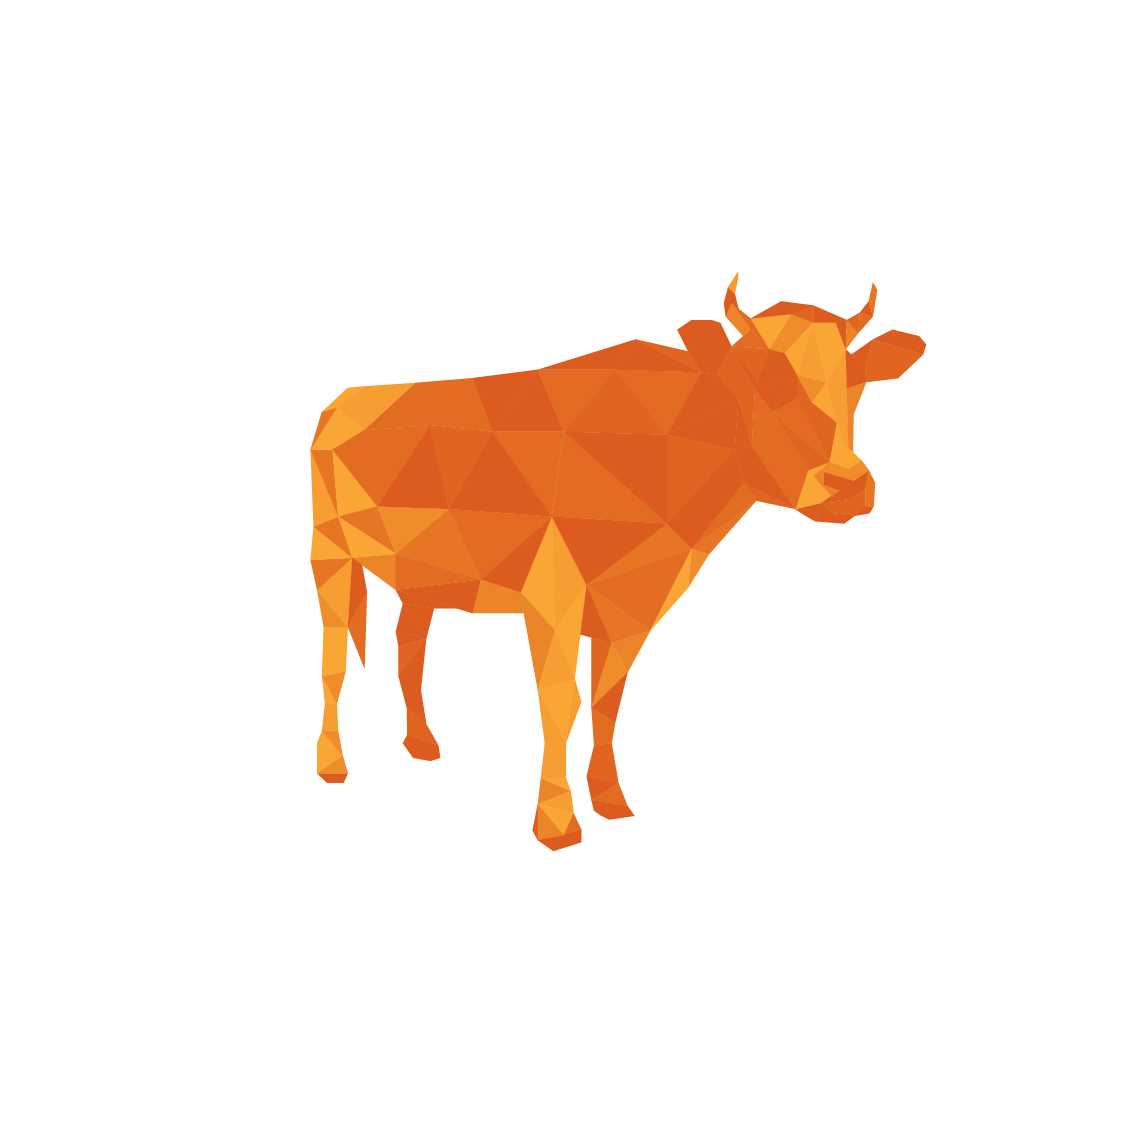 Orange Cattle is a full-service Shopify, social media and eCommerce marketing agency w/ offices in Dallas, Lufkin and Houston, Texas.